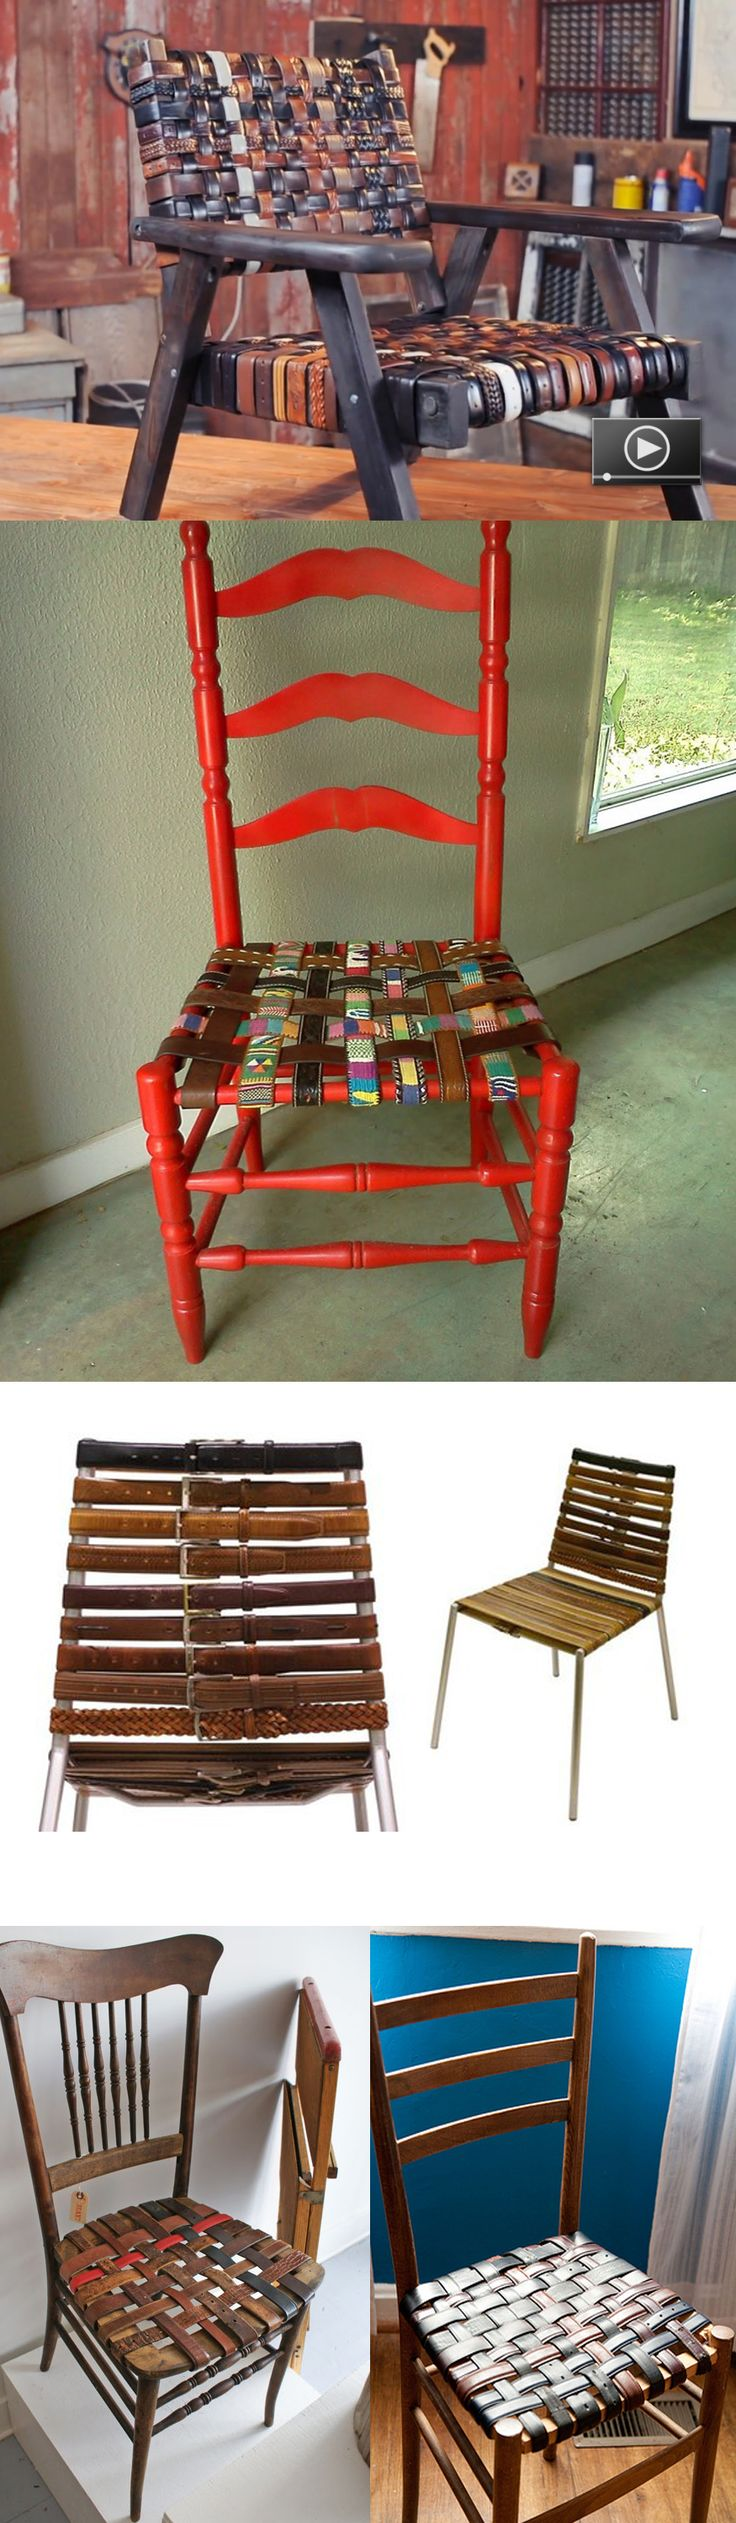 "DIY belt chairs!! Great way to fix any broken or old chair. Love these...fasten your seat belts. :) Imagine the possibilities, follow link for ""how to"". You could even use men's ties."